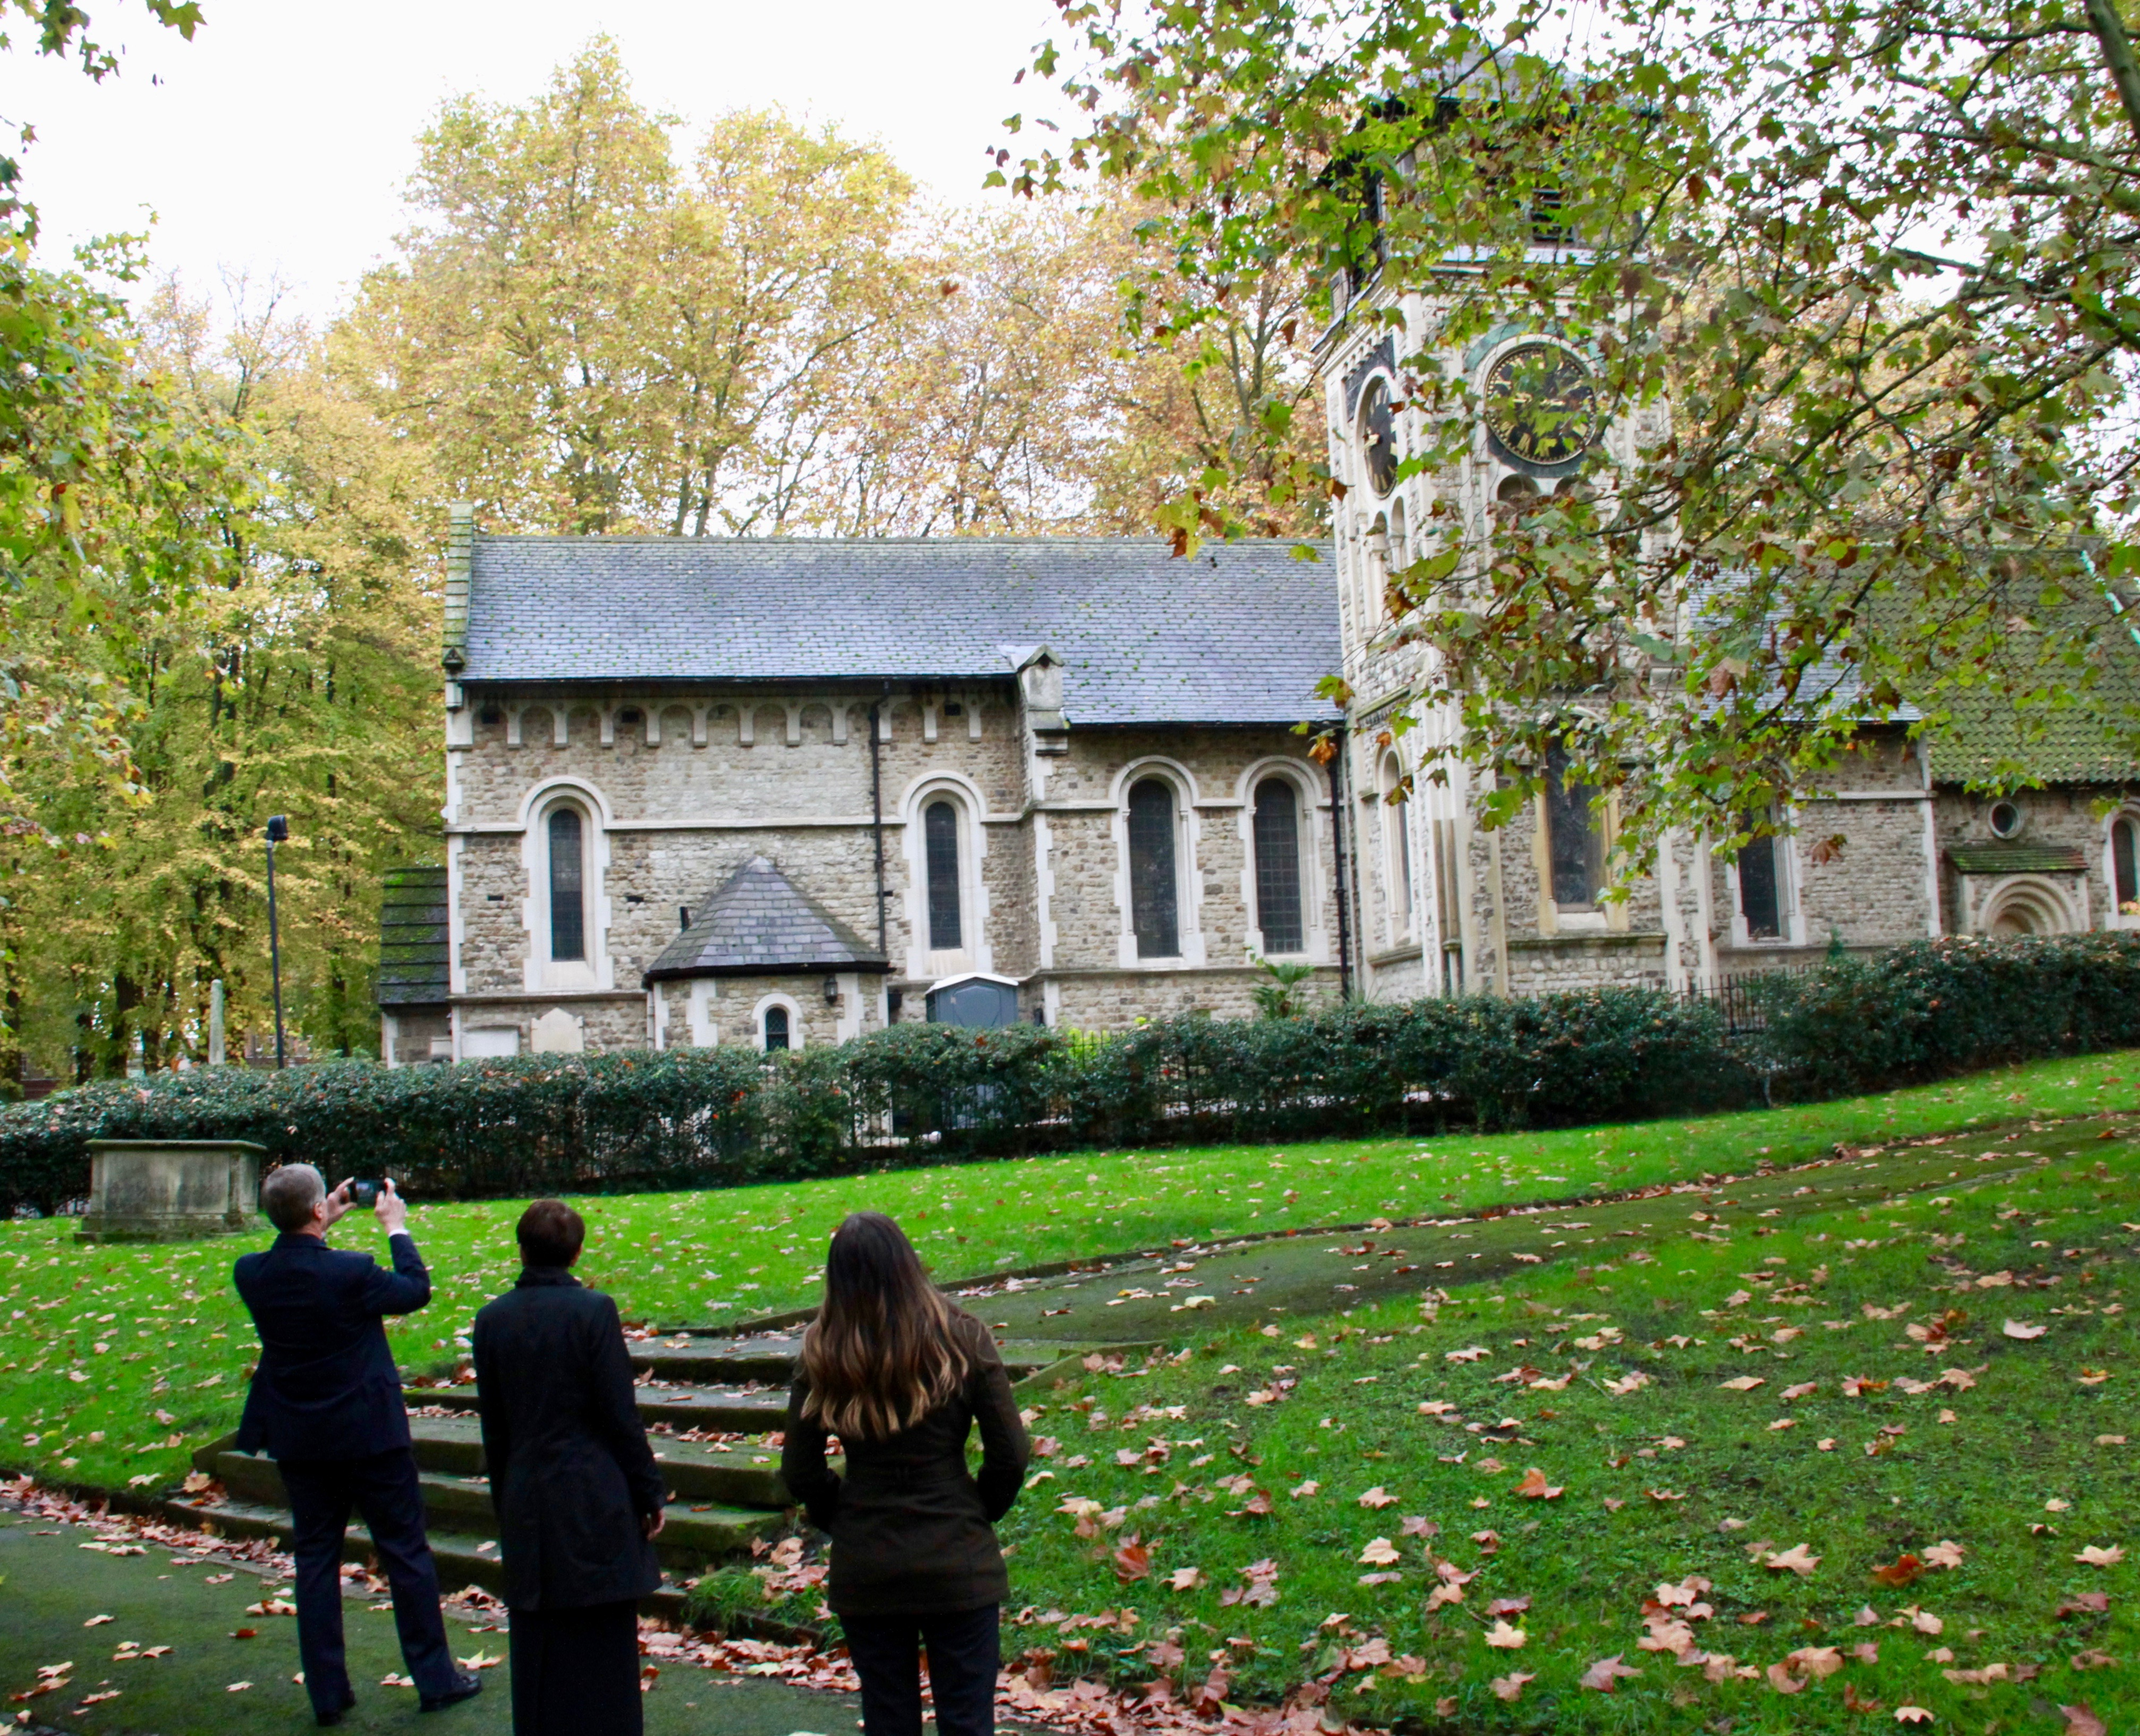 Elder David A. Bednar takes a photo of the St. Pancras Old Church on Oct. 25, 2019, in London. He's joined by Sister Susan Bednar, center, and Whitney Peterson, a FamilySearch content strategist specializing in the British Isles, right.